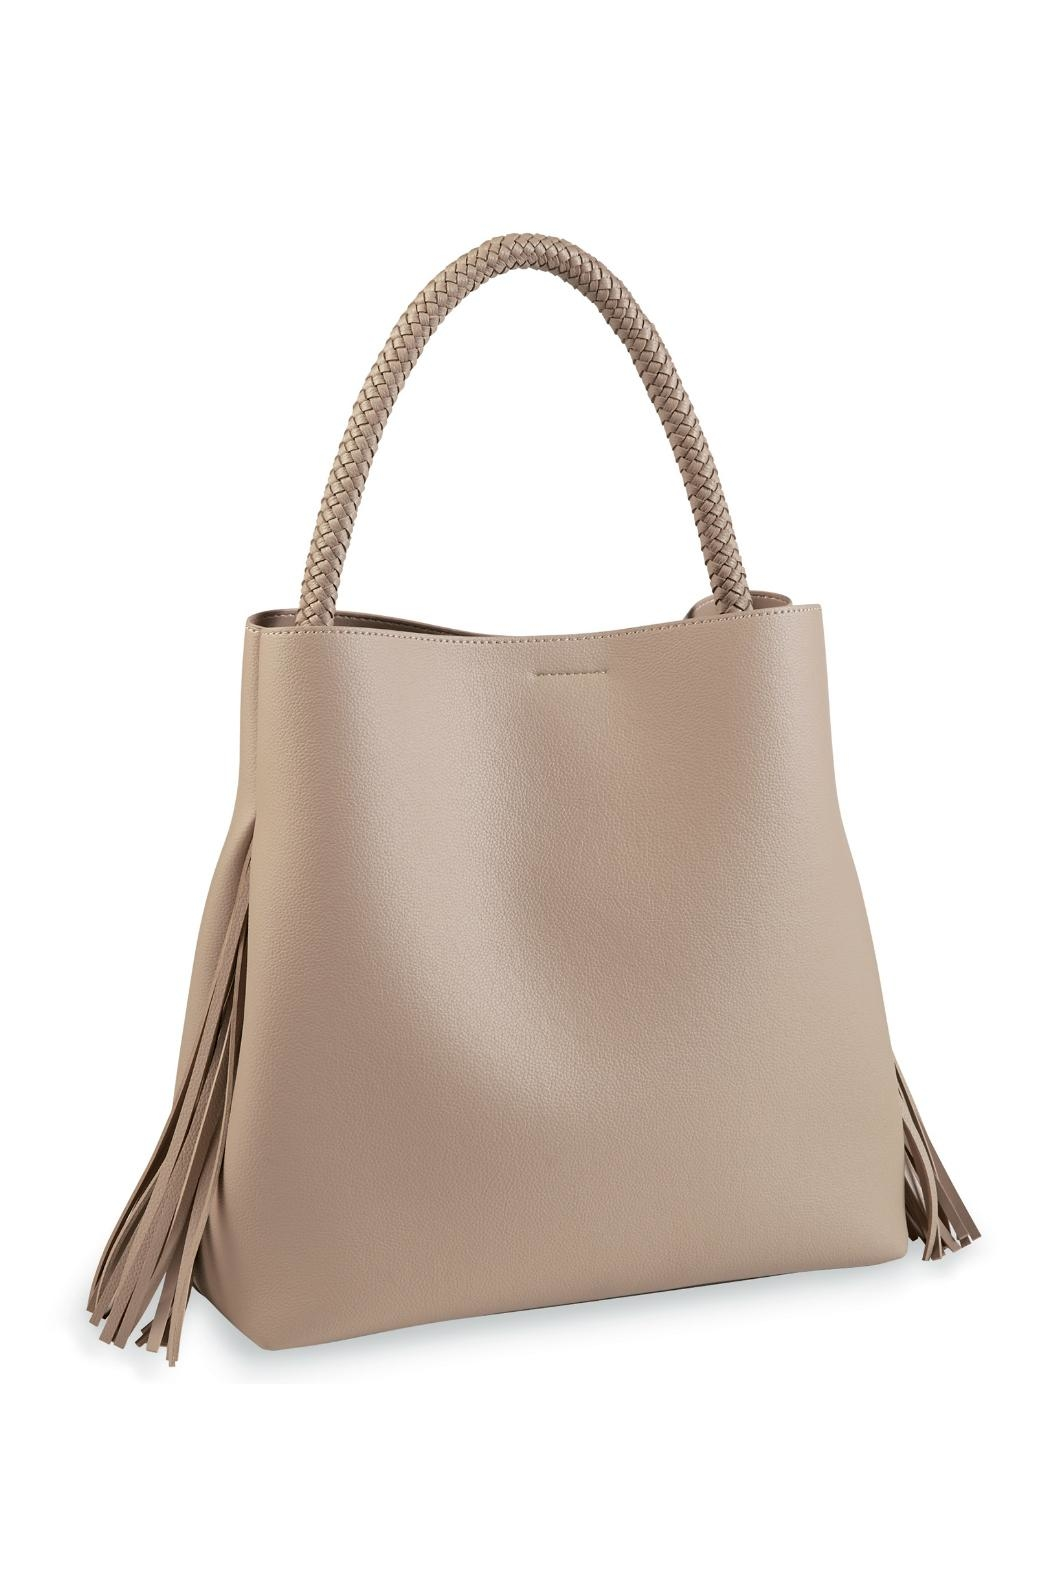 Mud Pie Fringe Tote Bag - Front Cropped Image